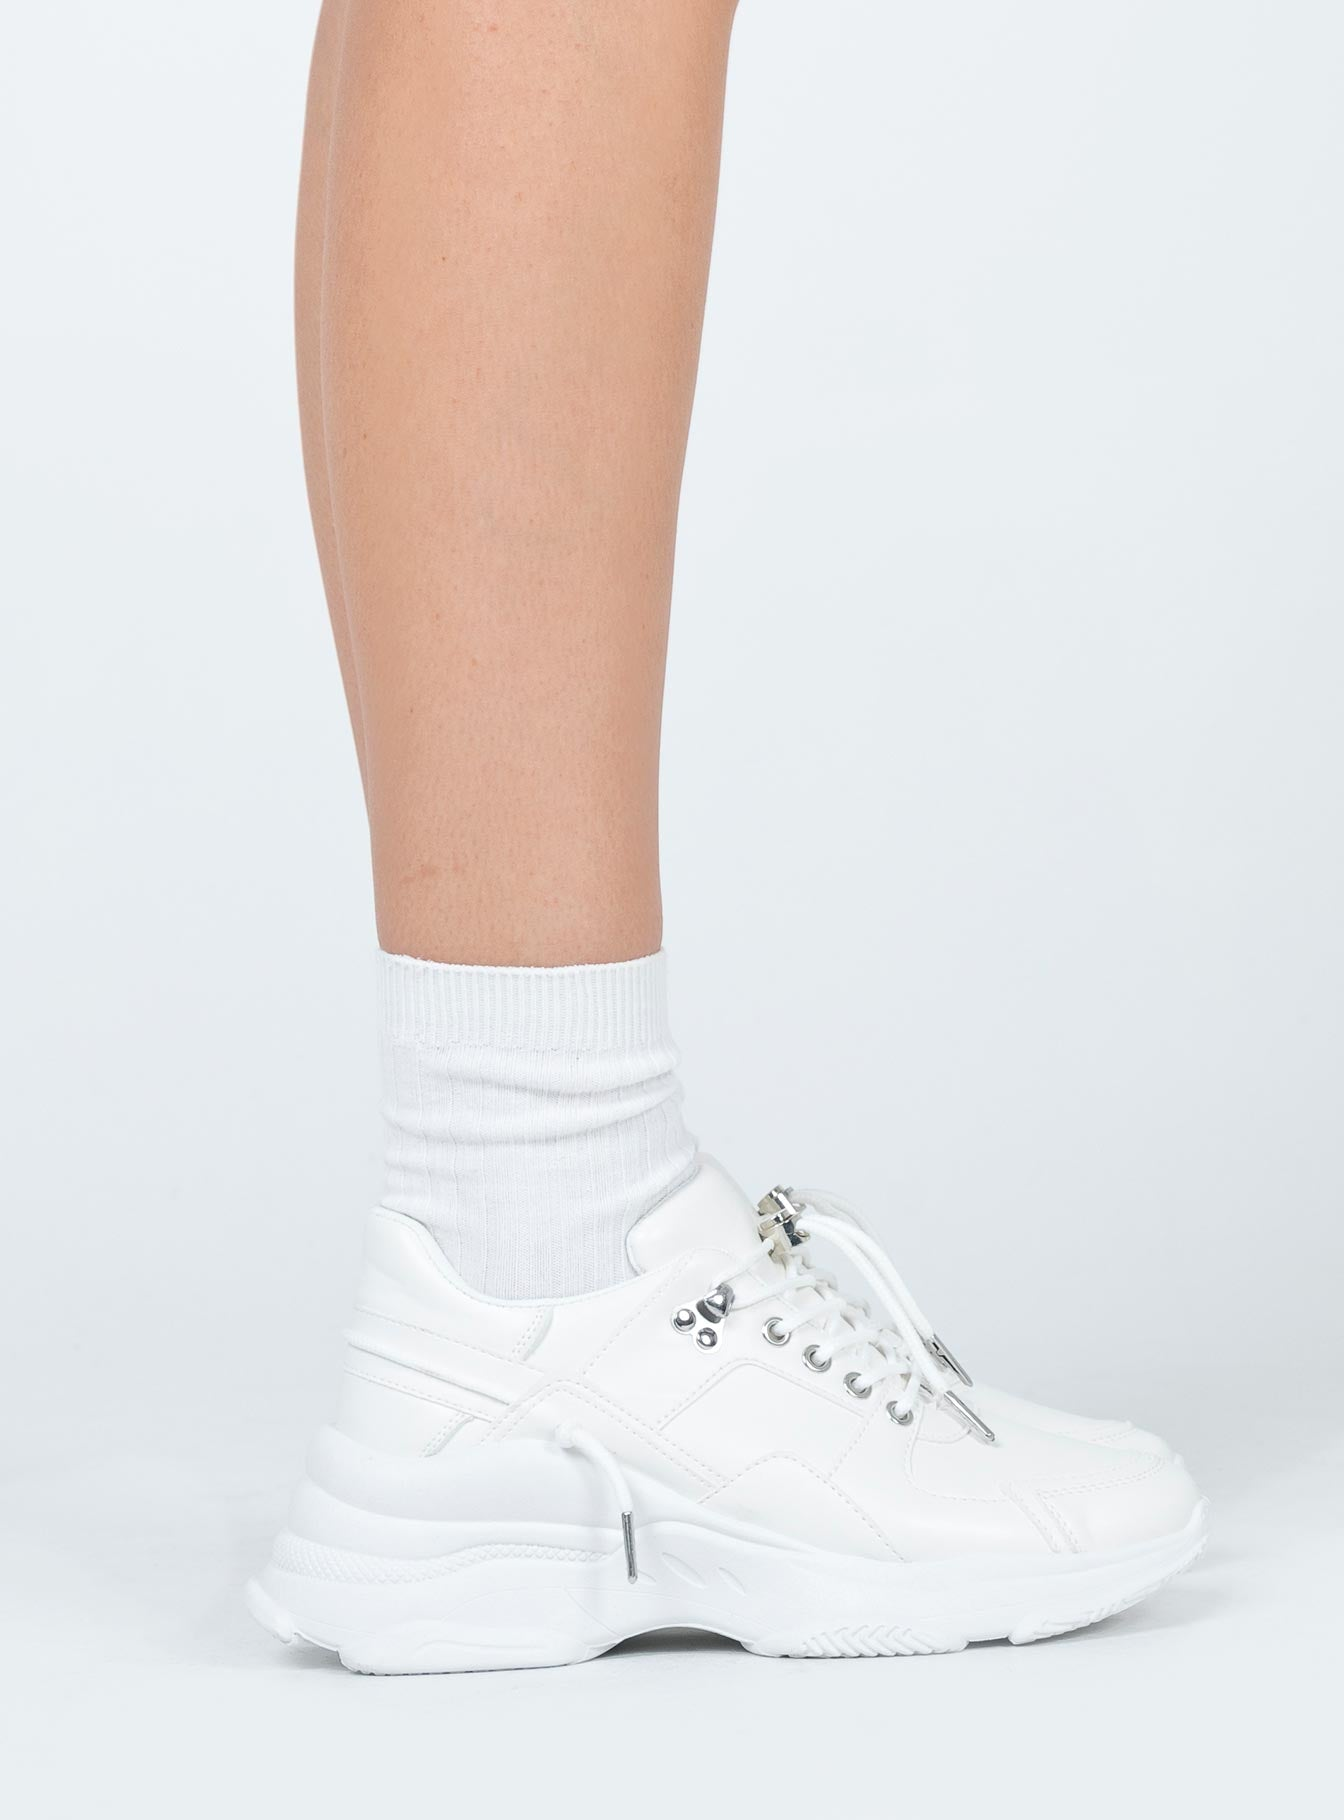 Eye Spy Sneaker White